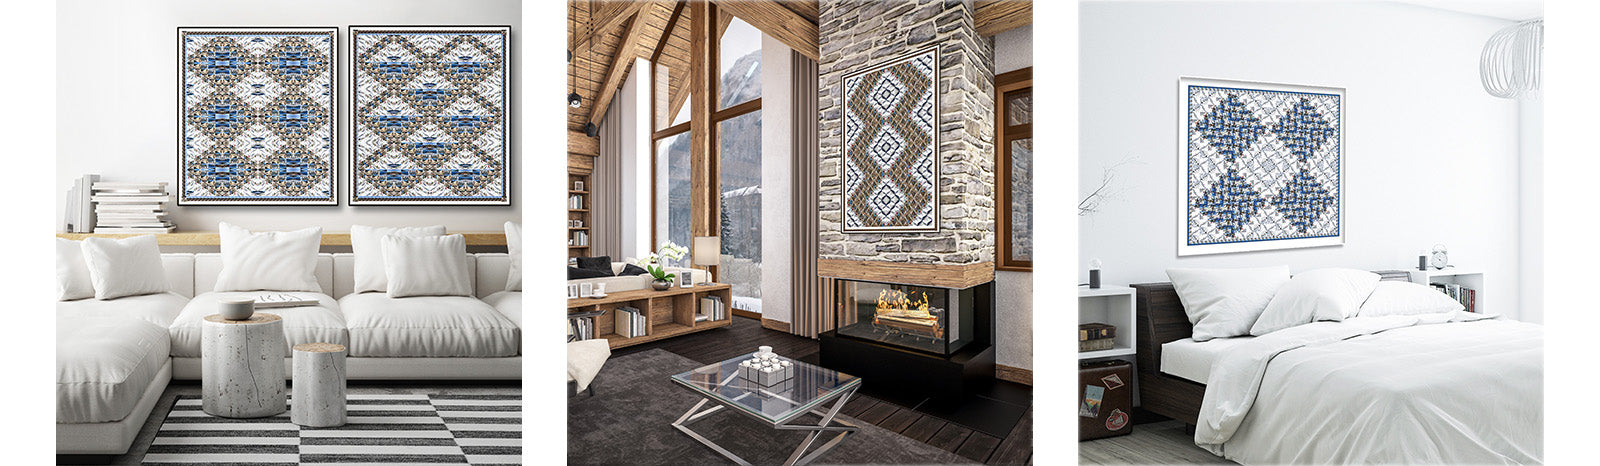 Cabin Fever Series - Ski art for mountain homes by Hooey Mountain